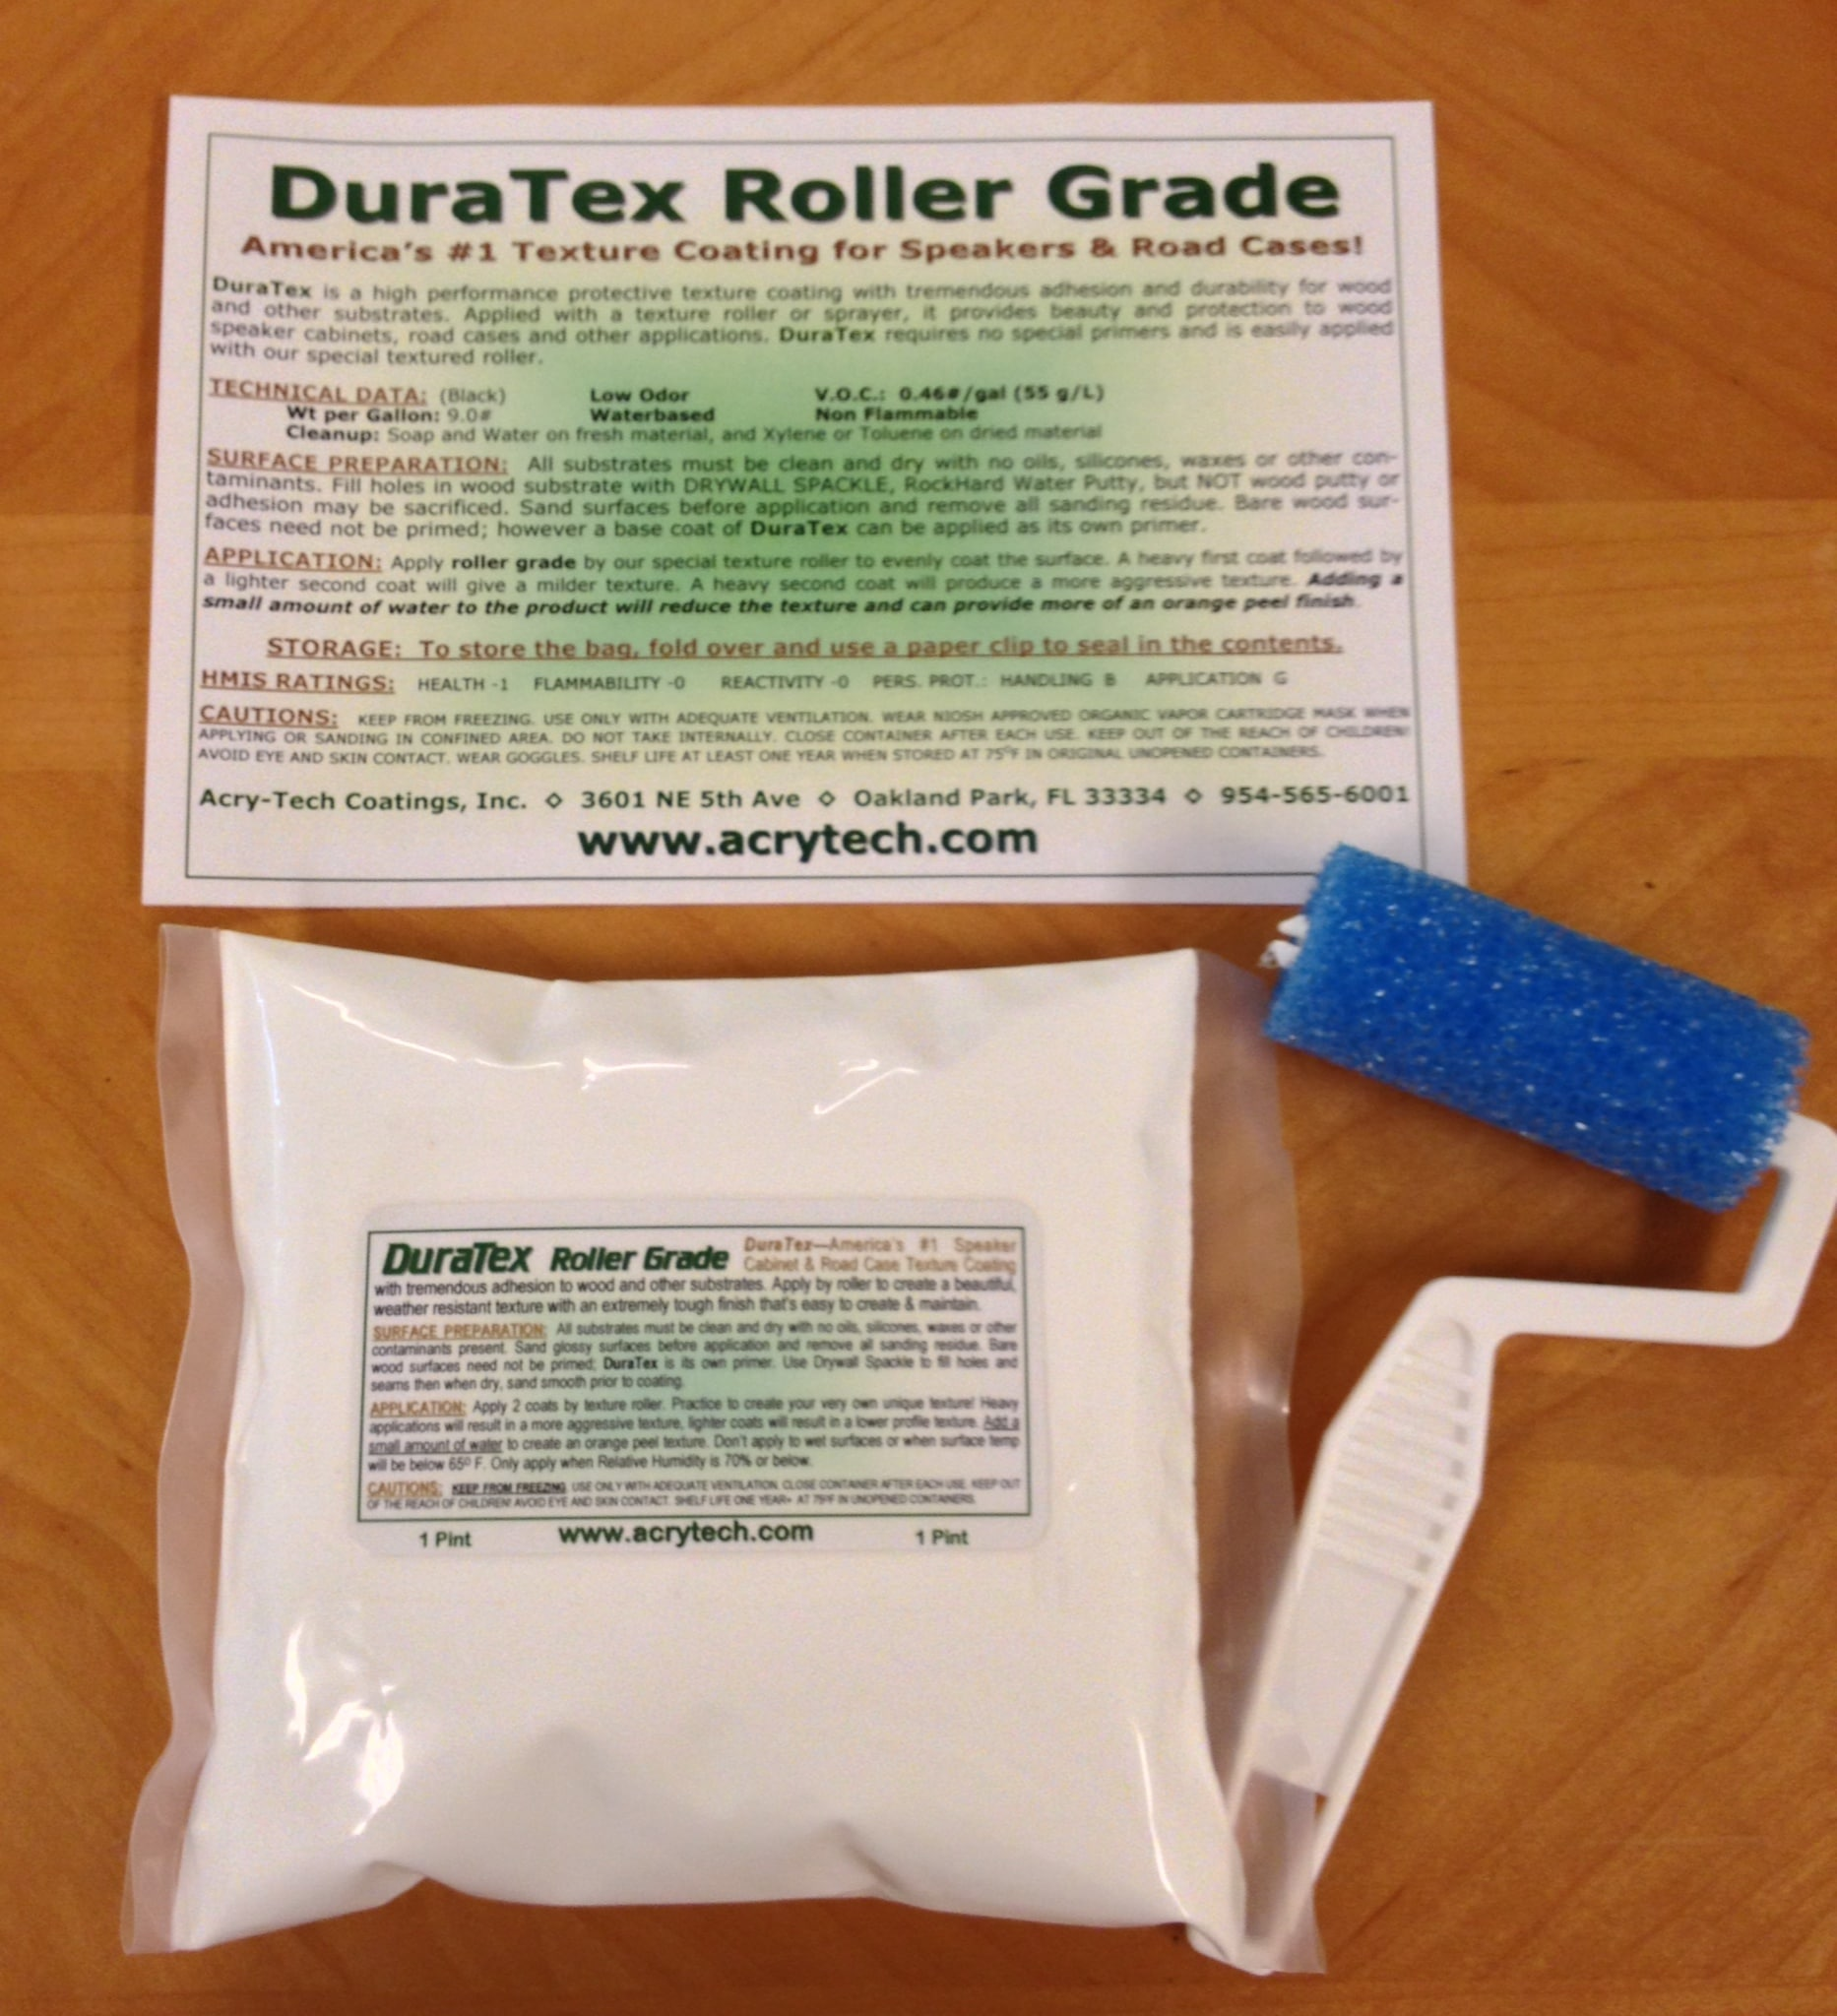 DuraTex Speaker Cabinet Texture Coating 1 Pint Trial Size Kit White